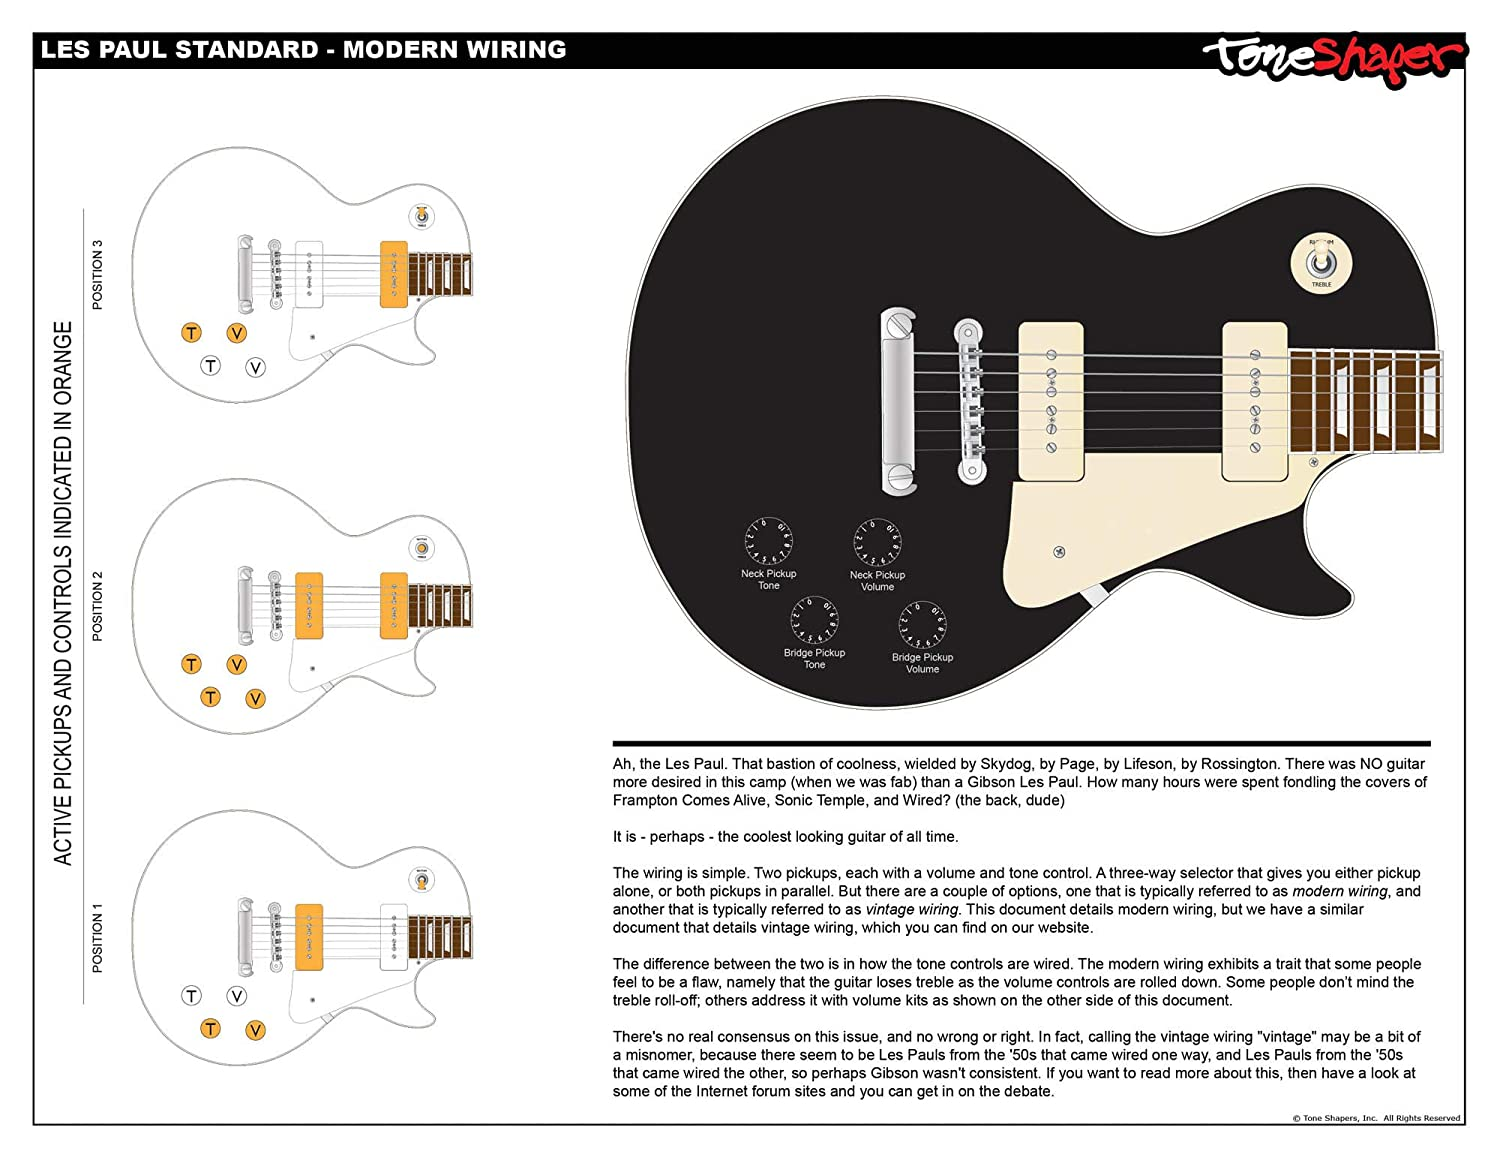 Toneshaper Guitar Wiring Kit For Les Paul Standard Modern Wiring Amazon In Musical Instruments